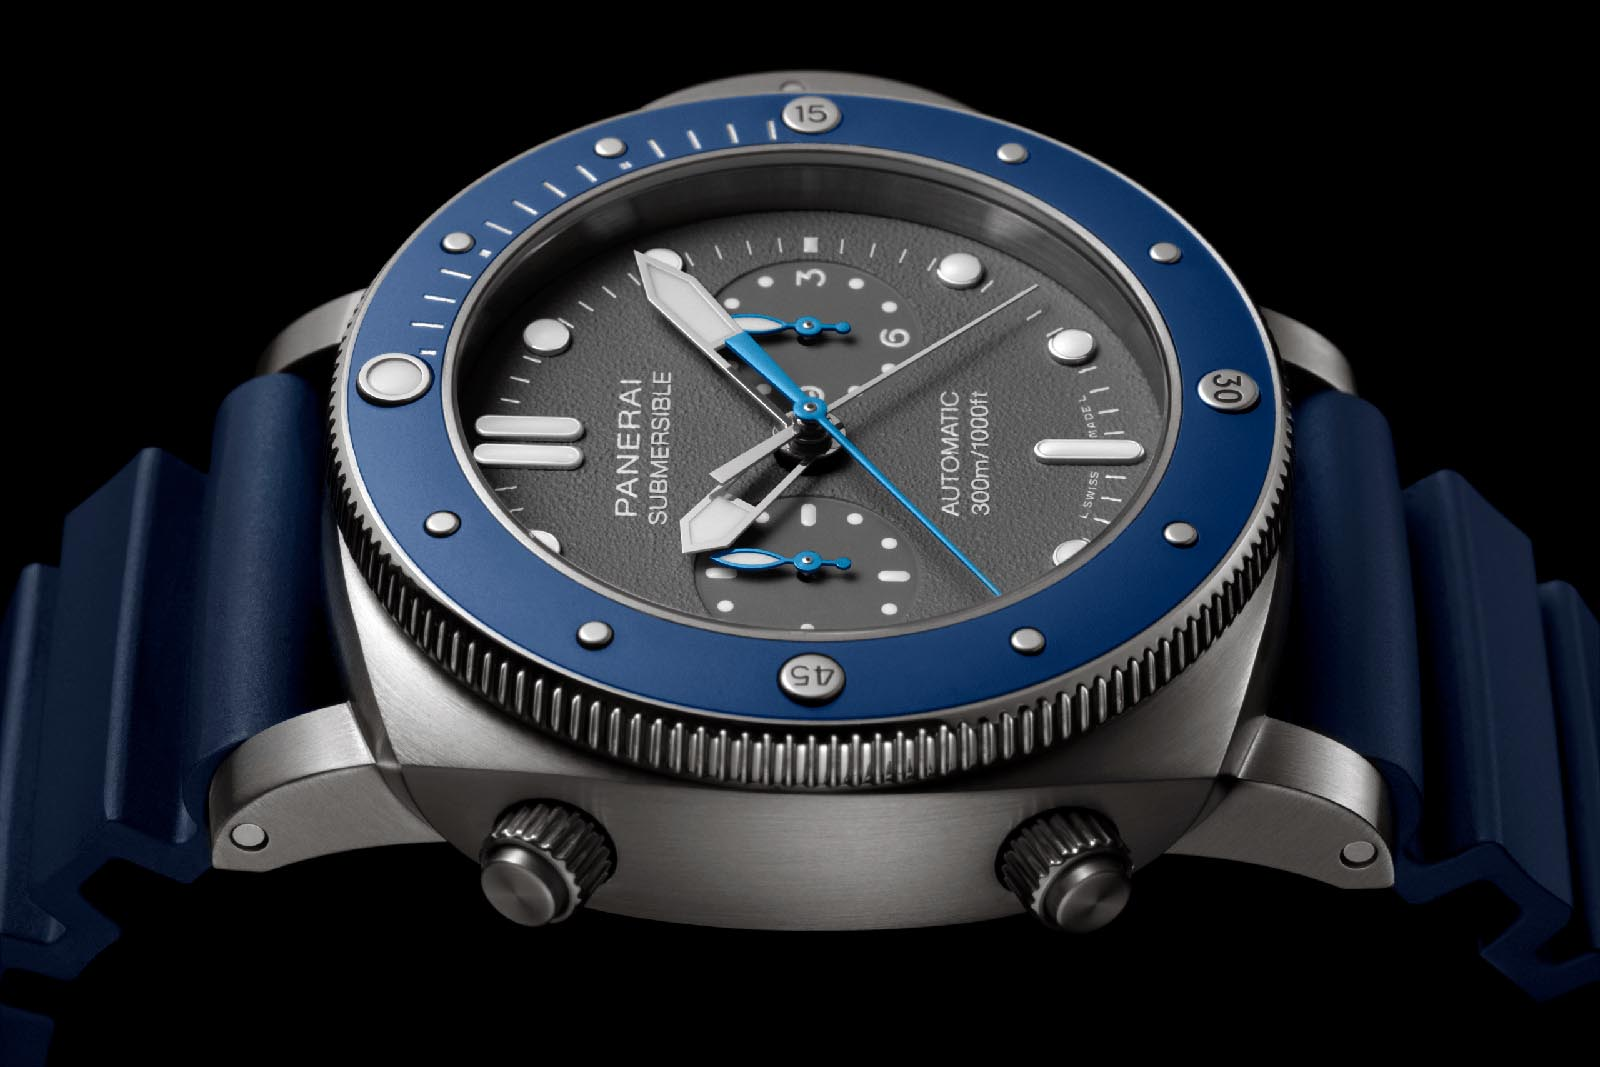 Panerai Submersible Chrono Guillaume Néry Edition PAM00982 2